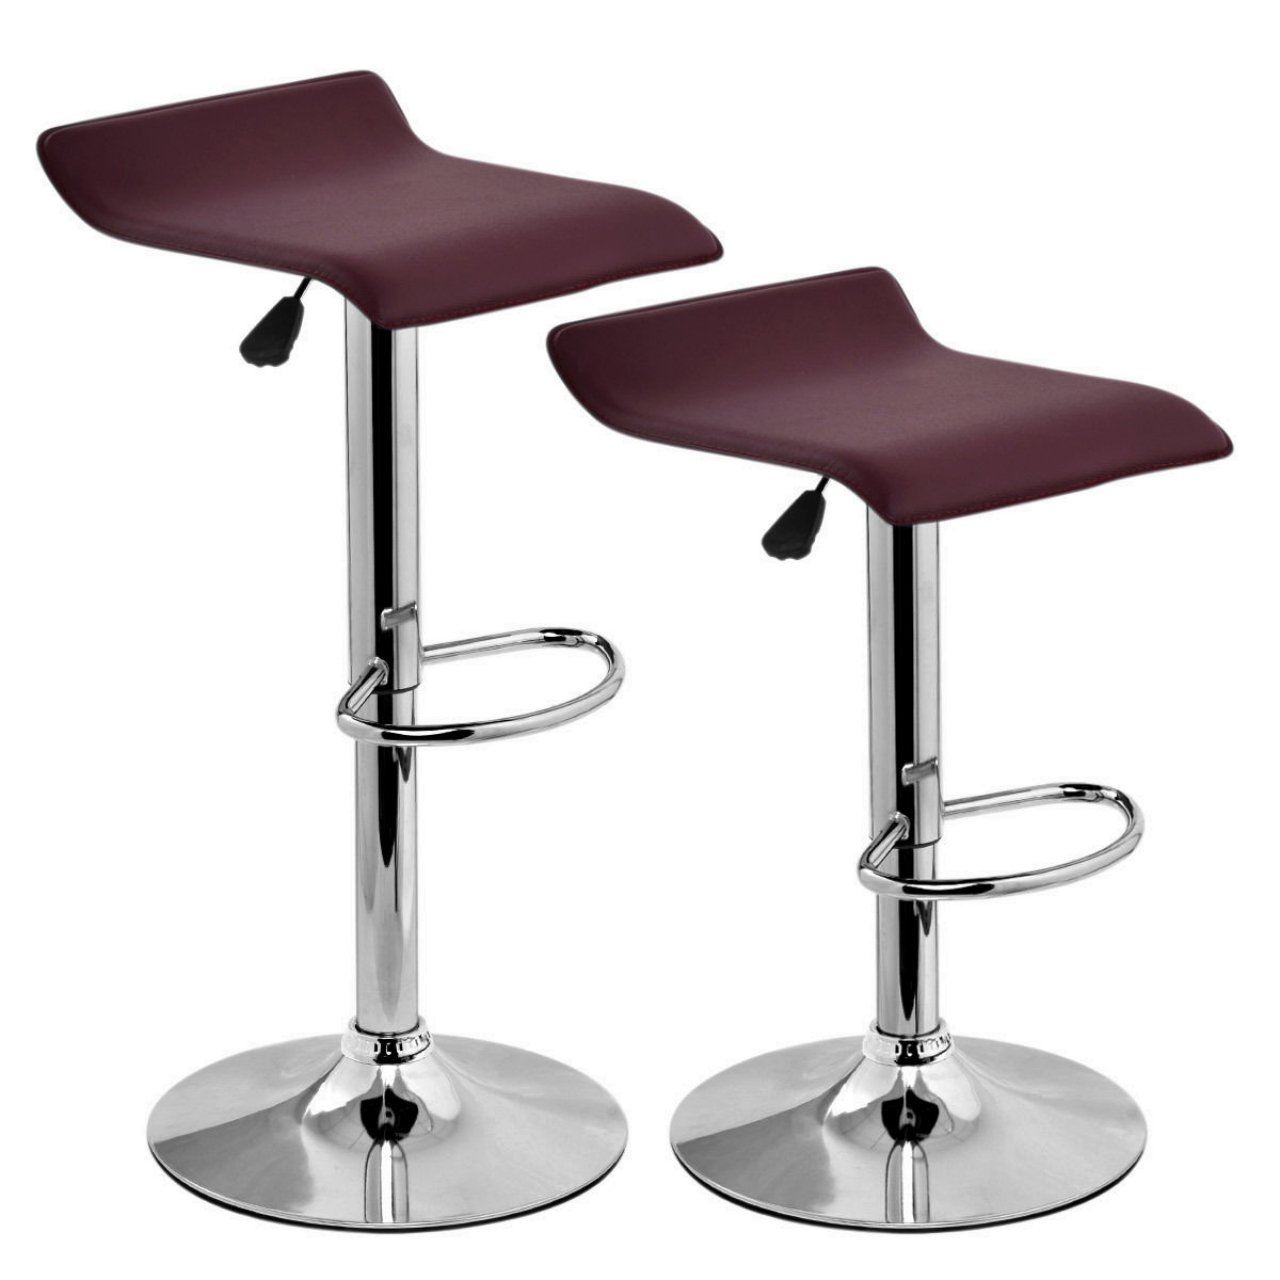 Set Of 2 Swivel Bar Stools Adjustable Waterproof Anti-aging PU Leather Backless Dining Bar Chair Square Brown #714